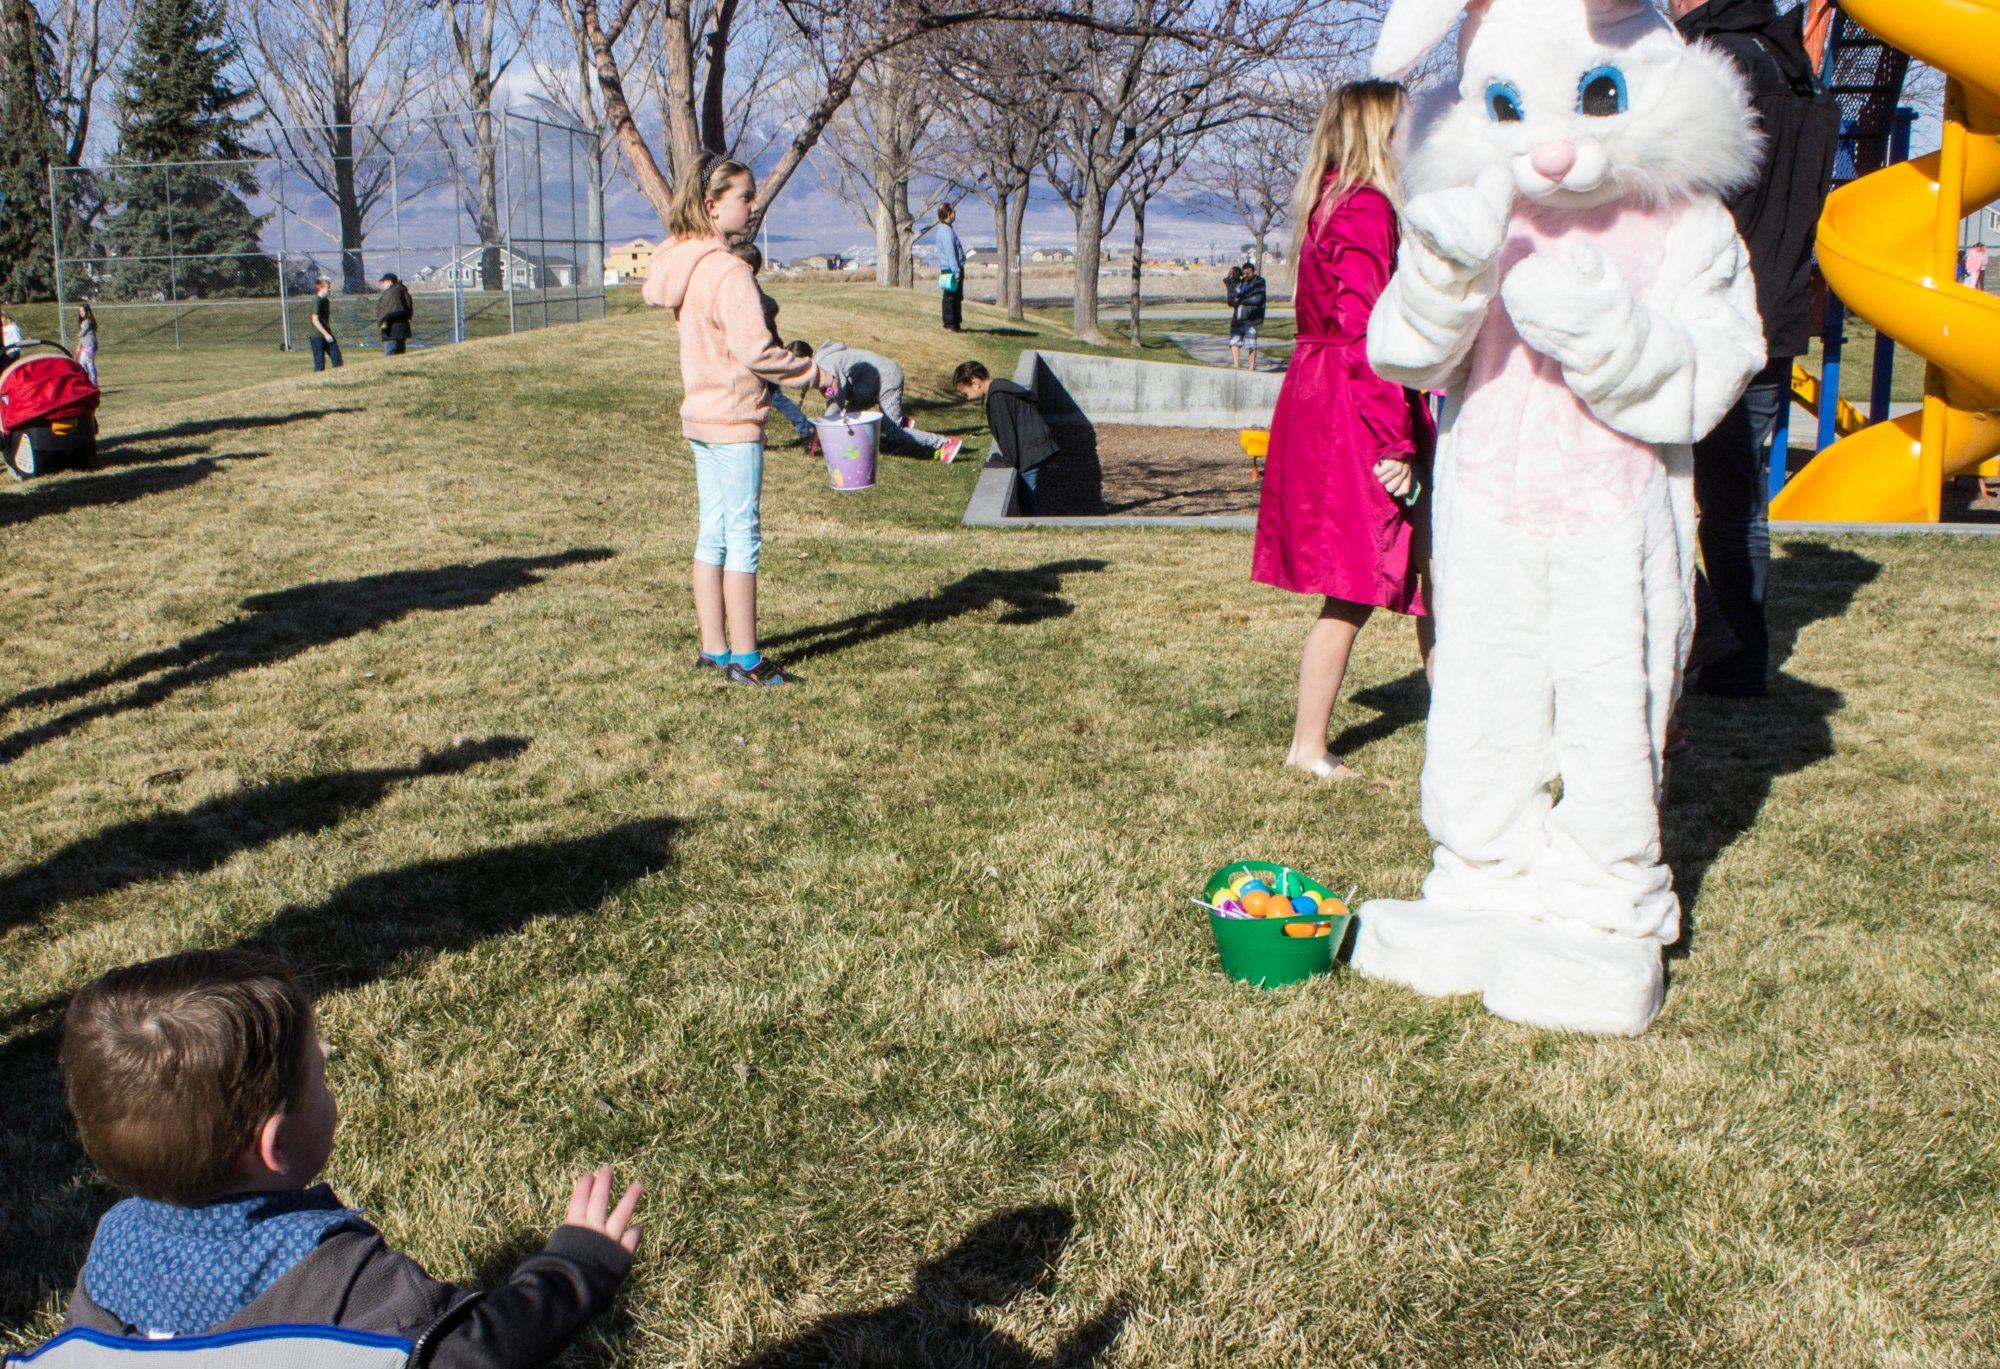 The Easter Bunny waving to a child.